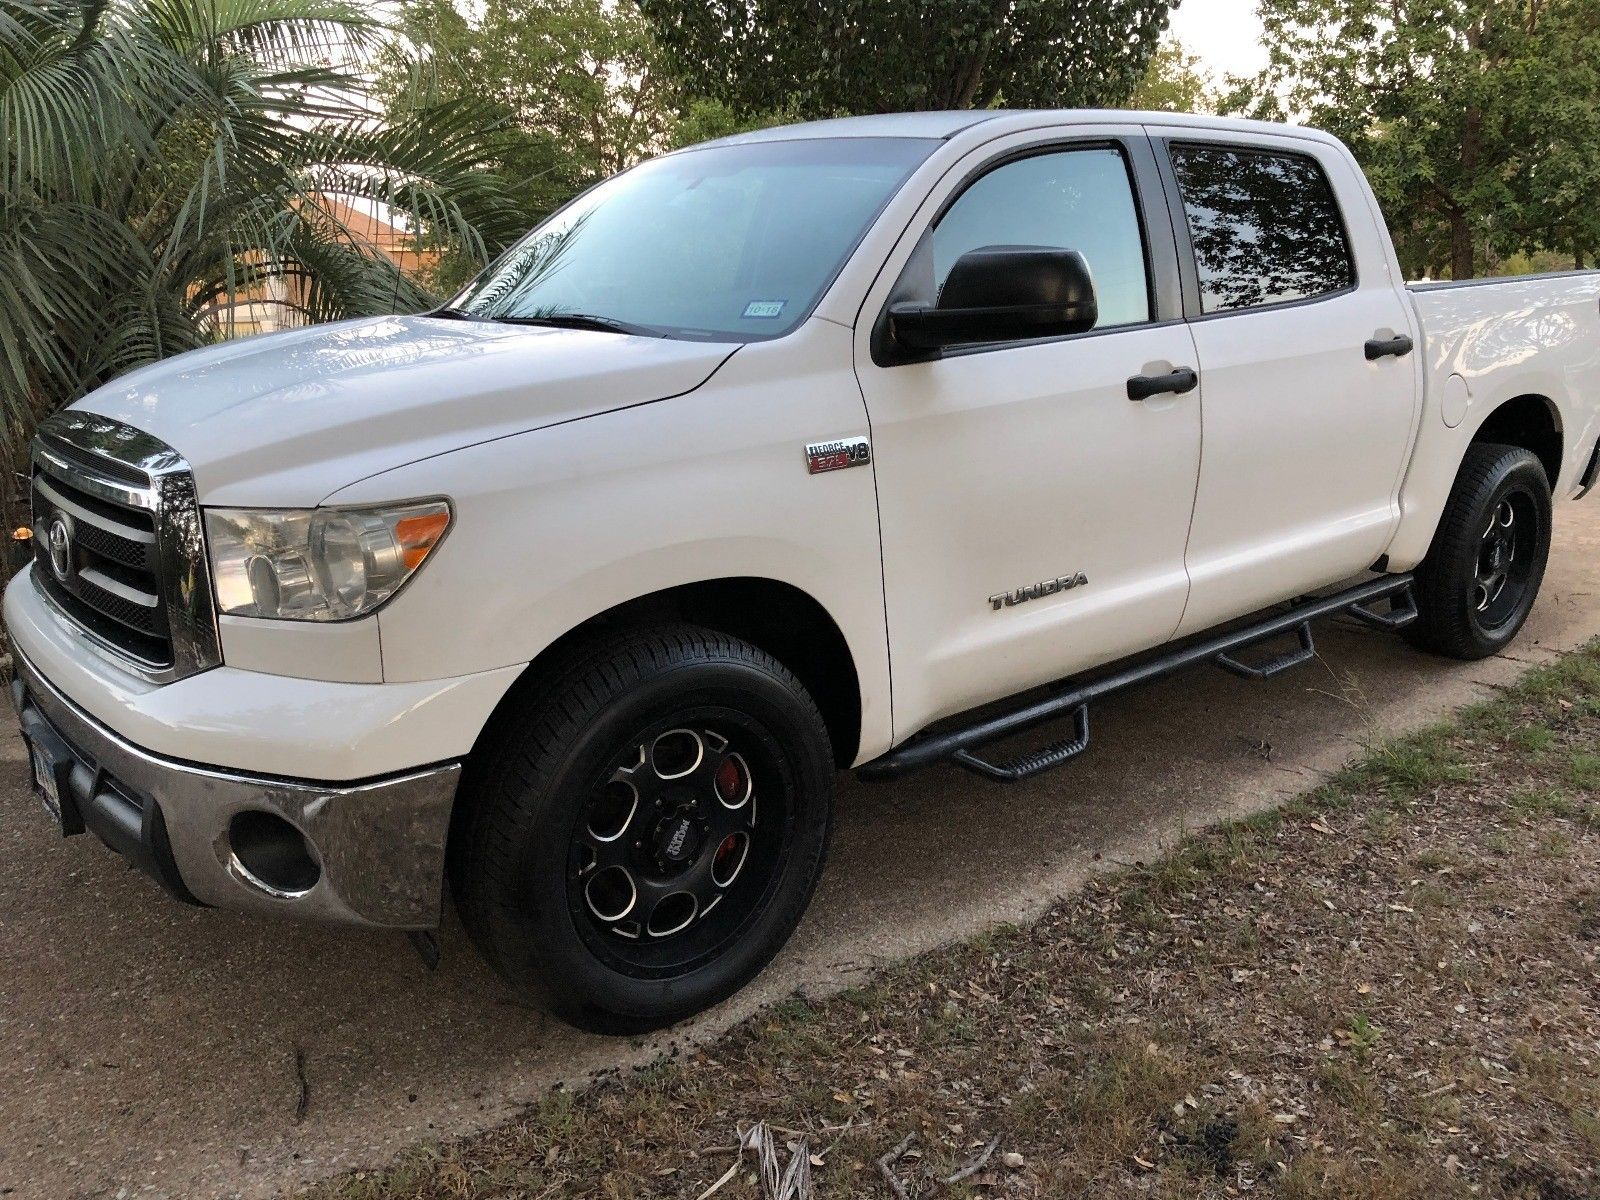 Toyota Tundra Supercharger >> Awesome 2010 Toyota Tundra Crewmax Toyota Tundra 2010 Crewmax Supercharger Clean One Owner 2018 2019